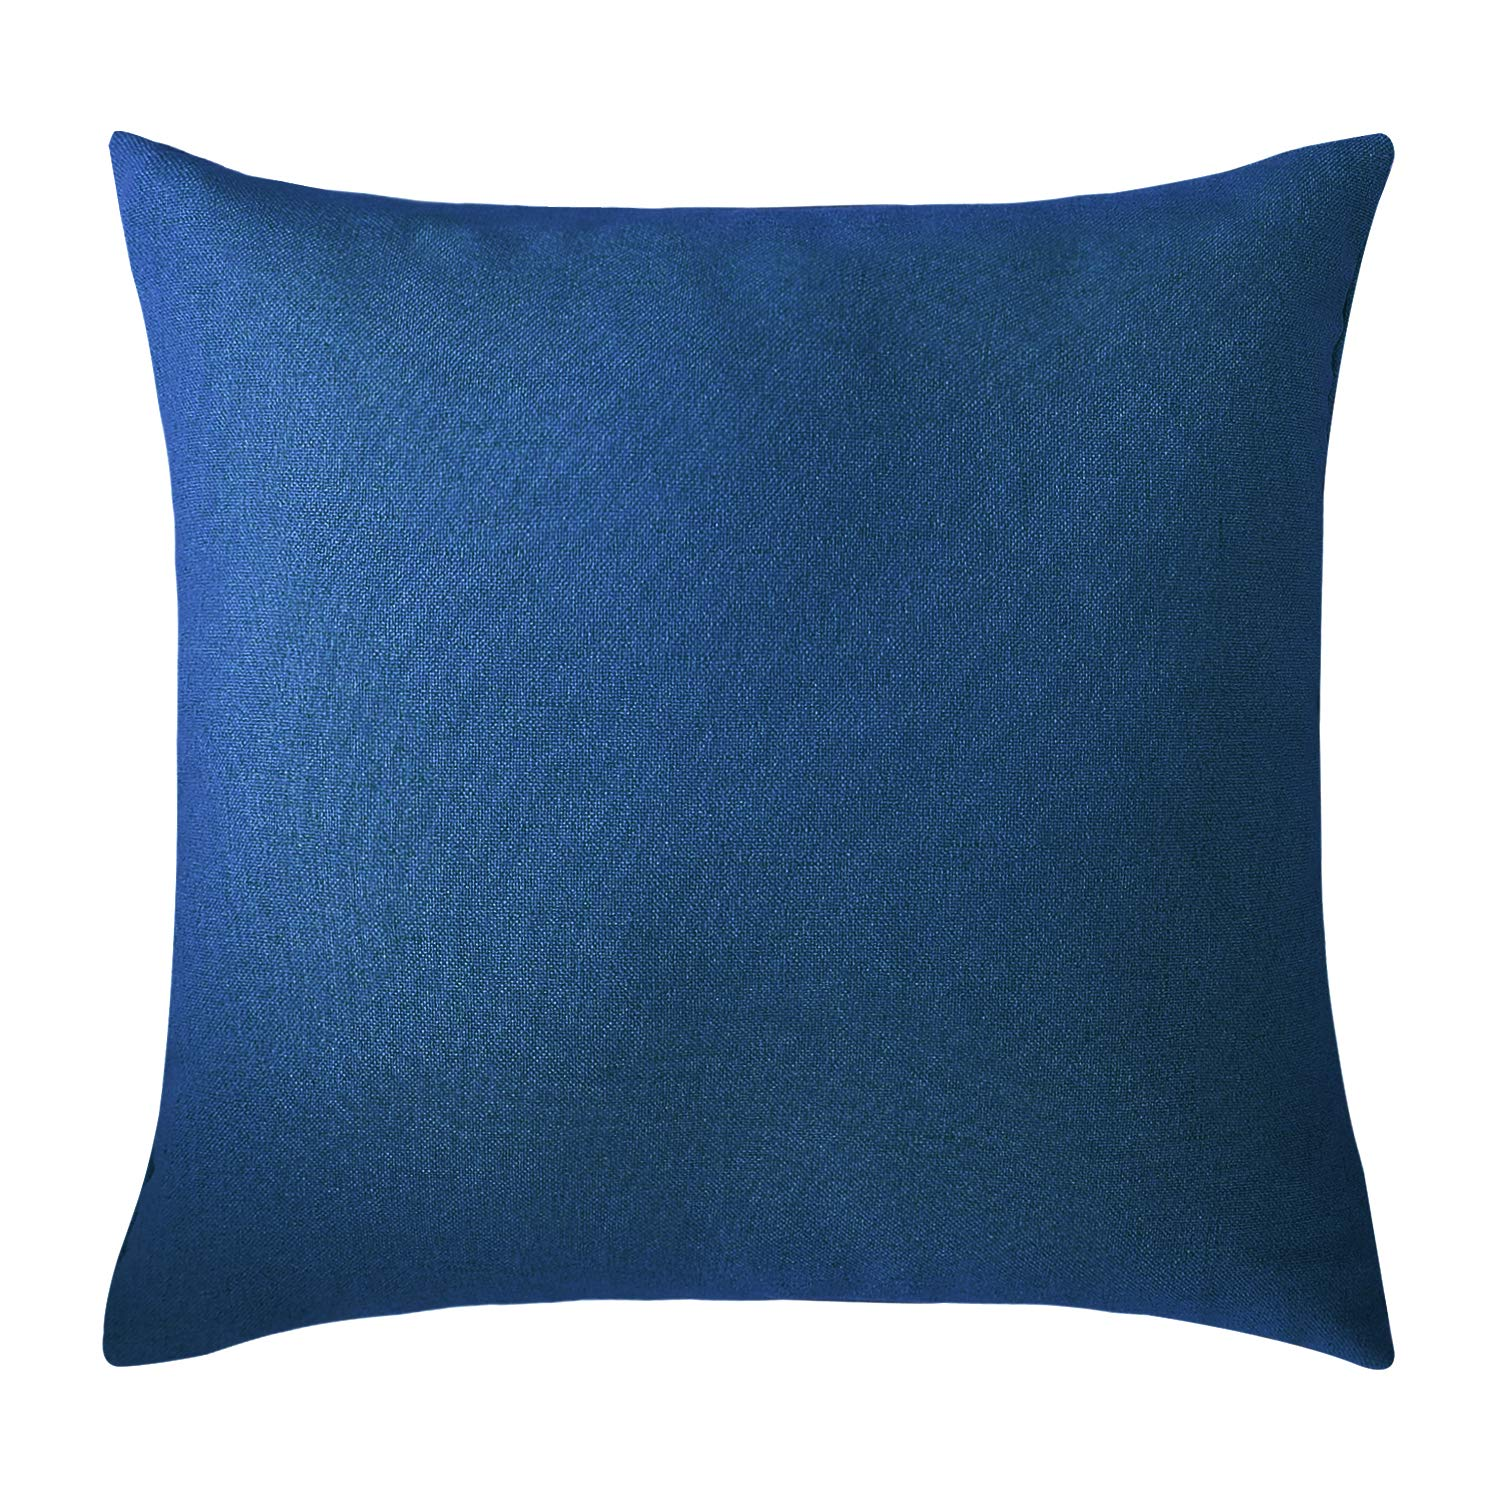 Deconovo Textural Faux Linen Home Decorative Hand Made Pillow Case Cushion Cover for Bed 18 x 18 Inch Federal Blue No Pillow Insert